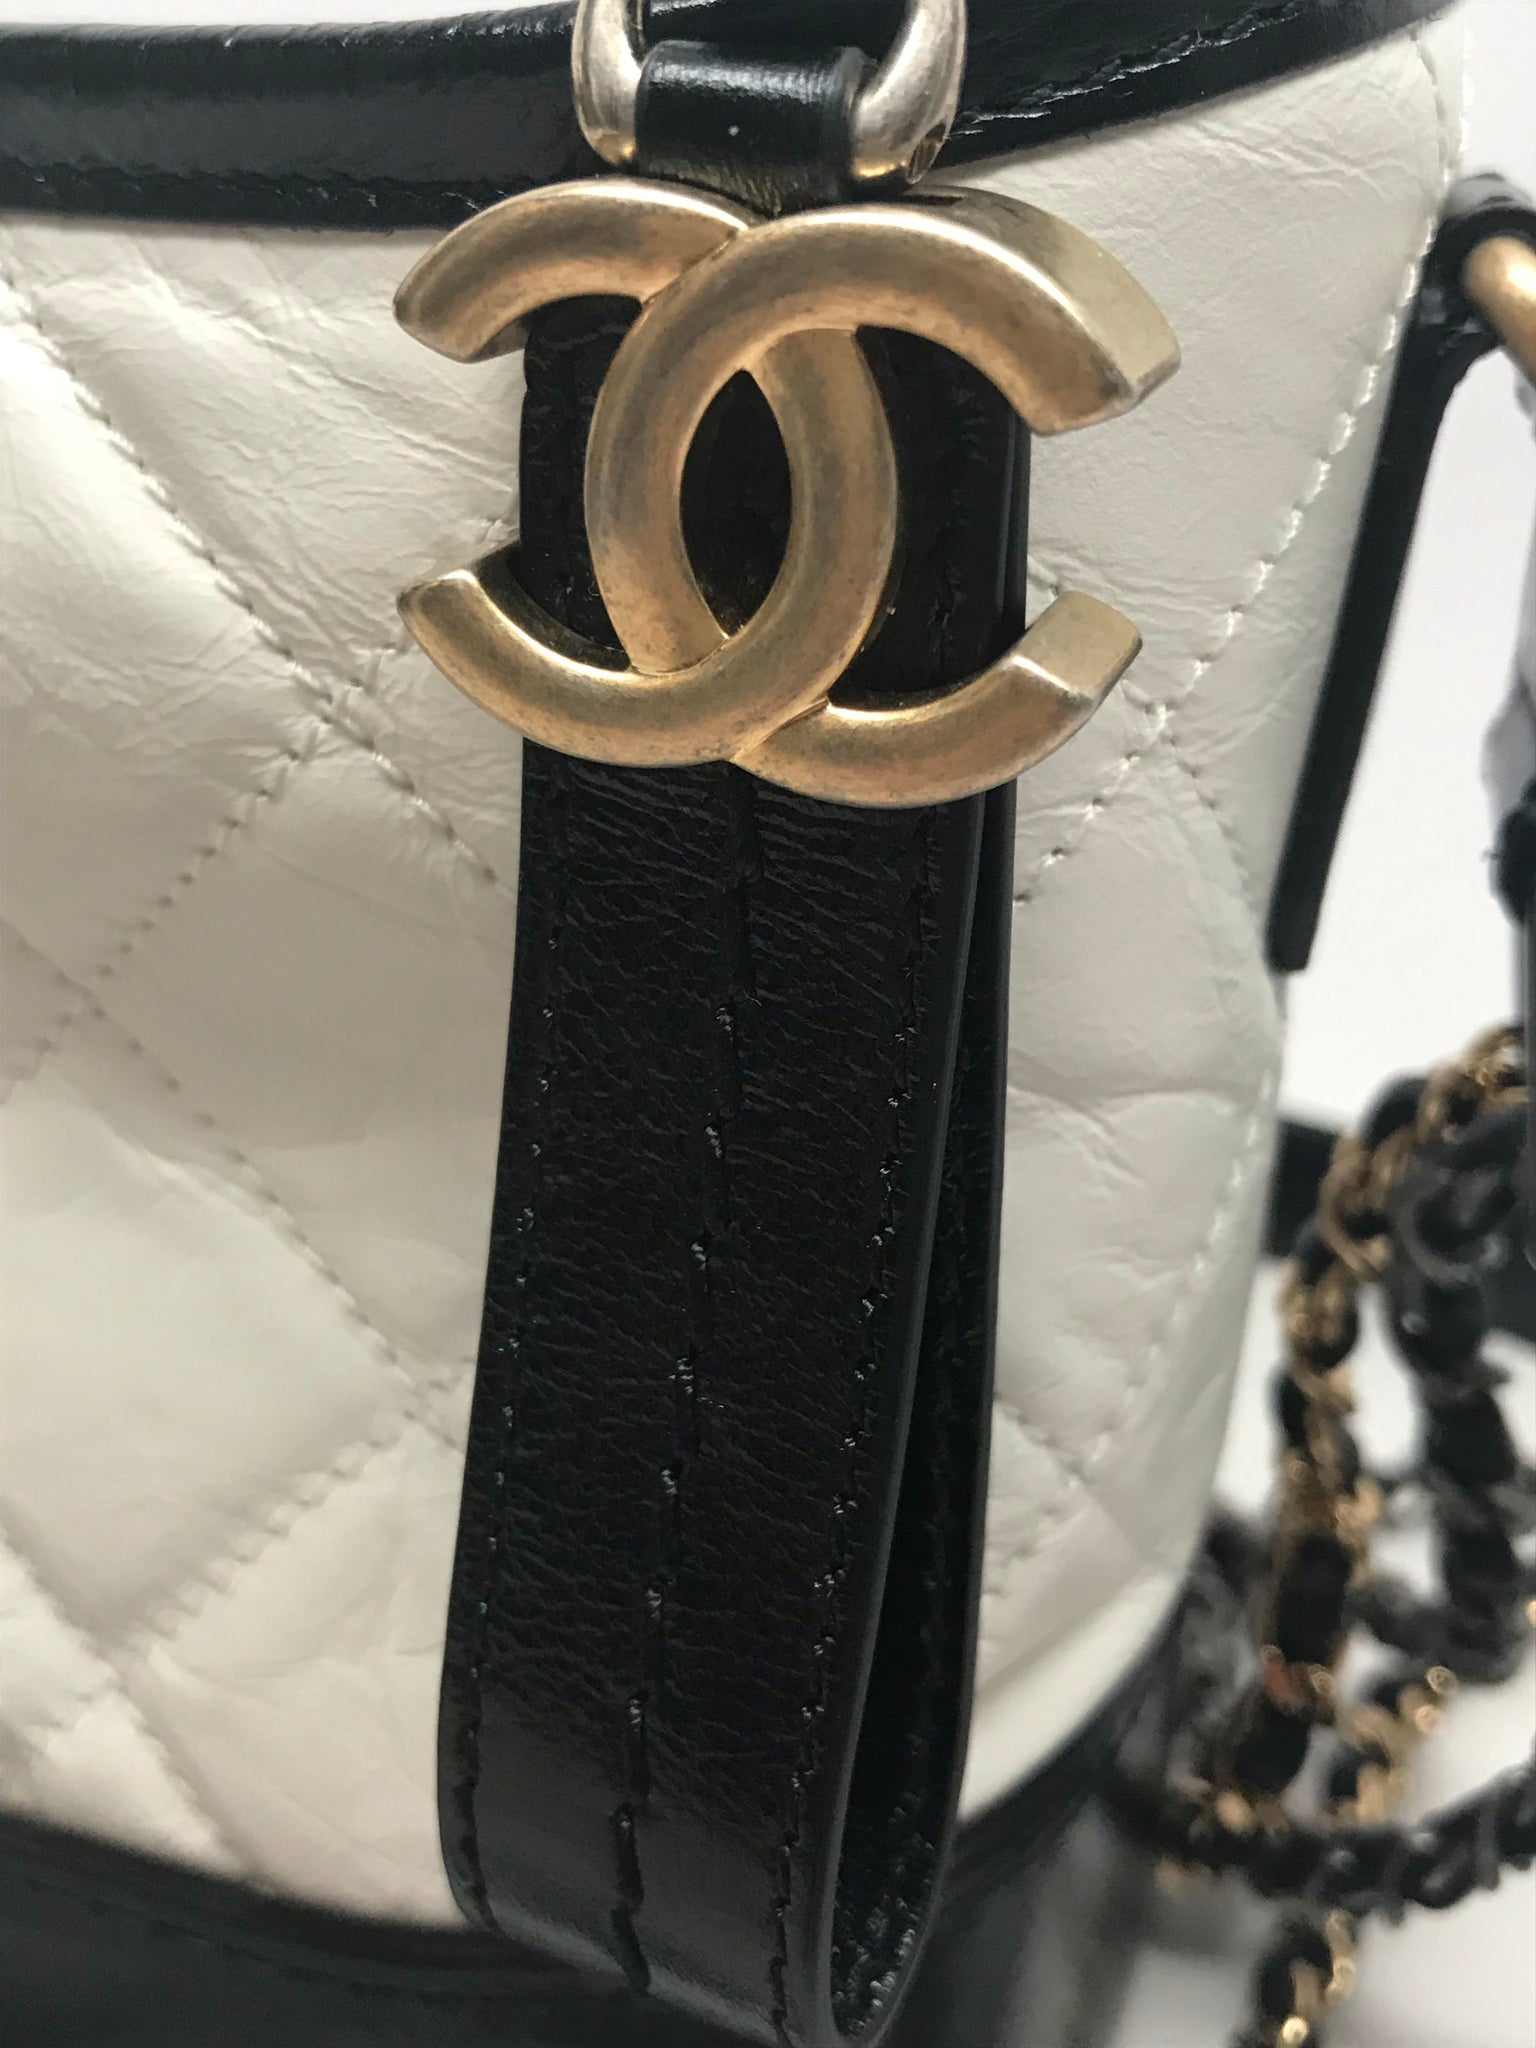 CHANEL BLACK AND WHITE SMALL GABRIELLE HOBO BAG